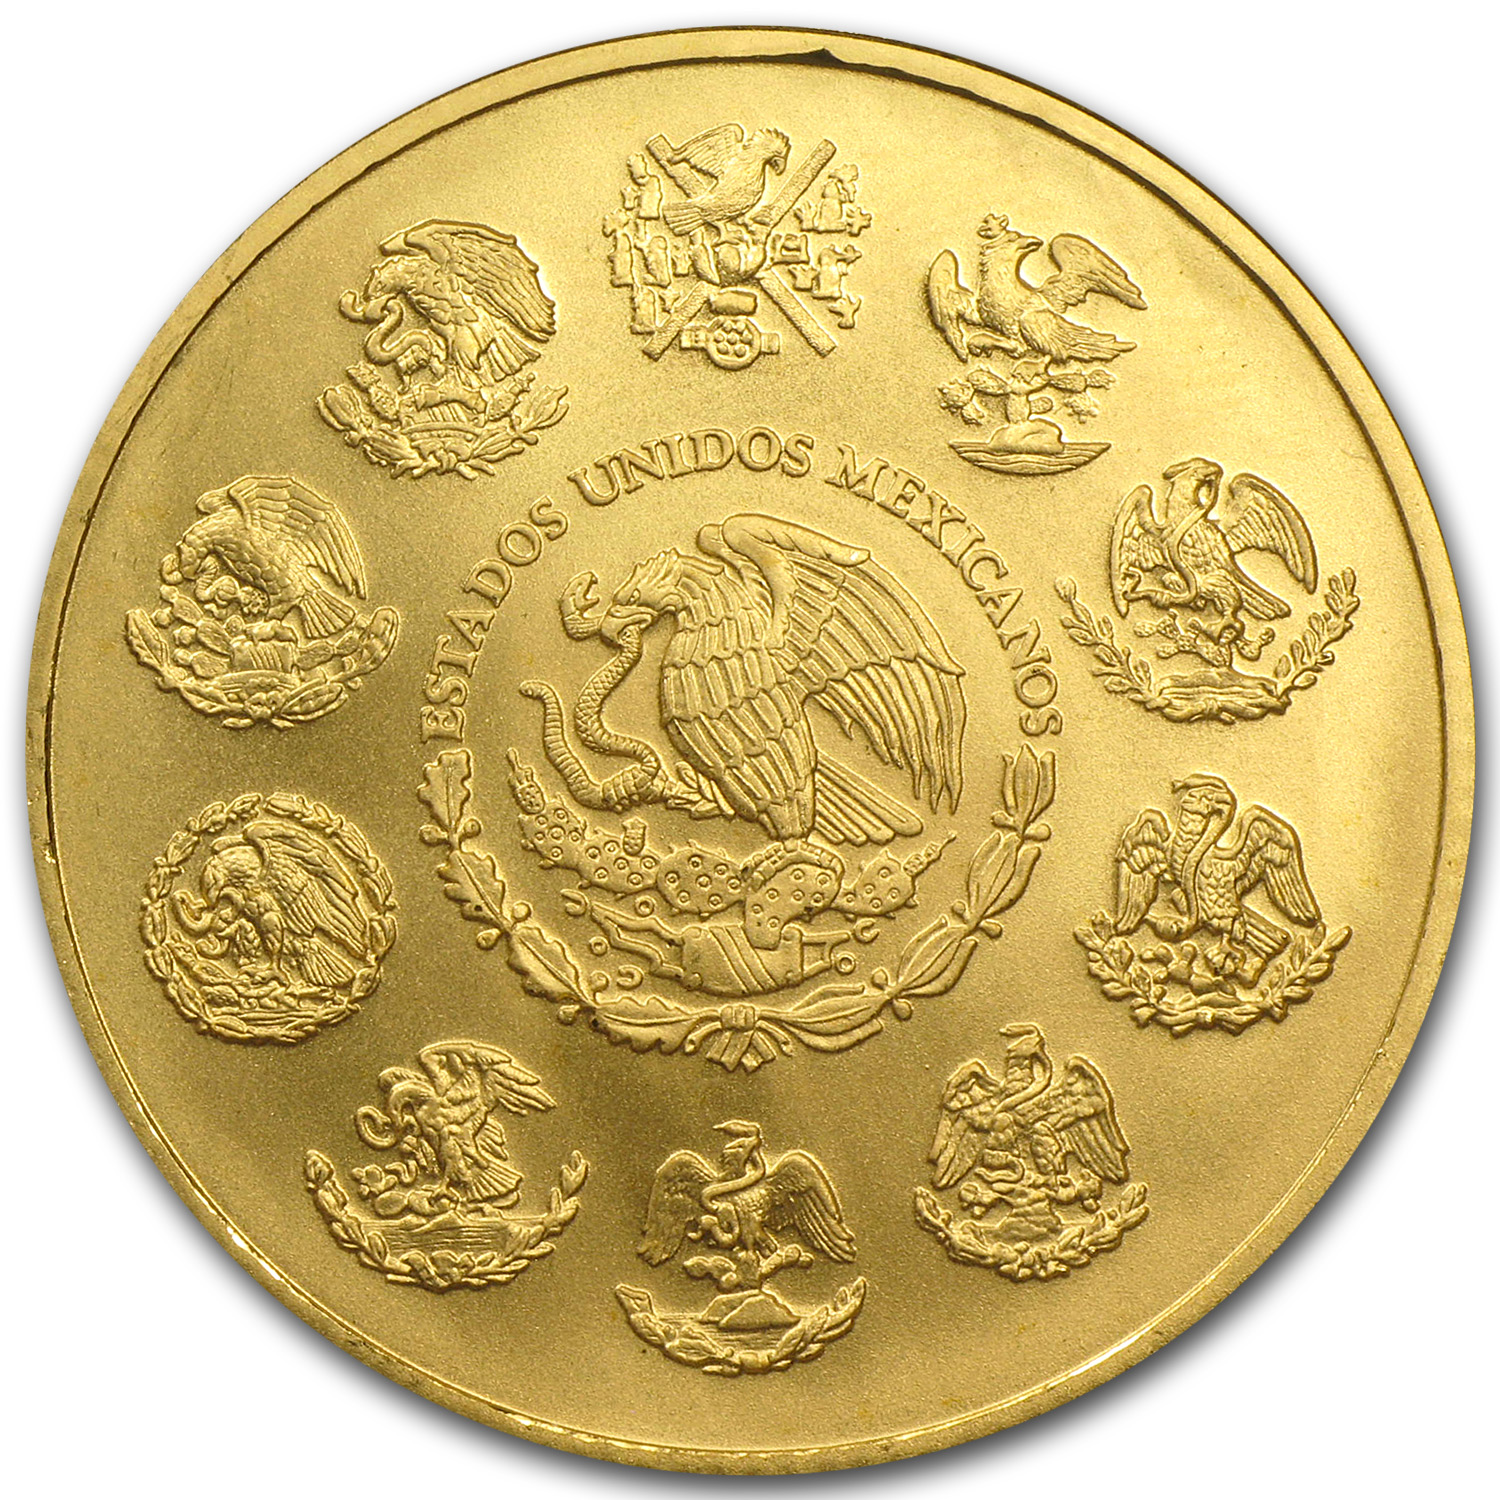 2004 1 oz Gold Mexican Libertad (Brilliant Uncirculated)